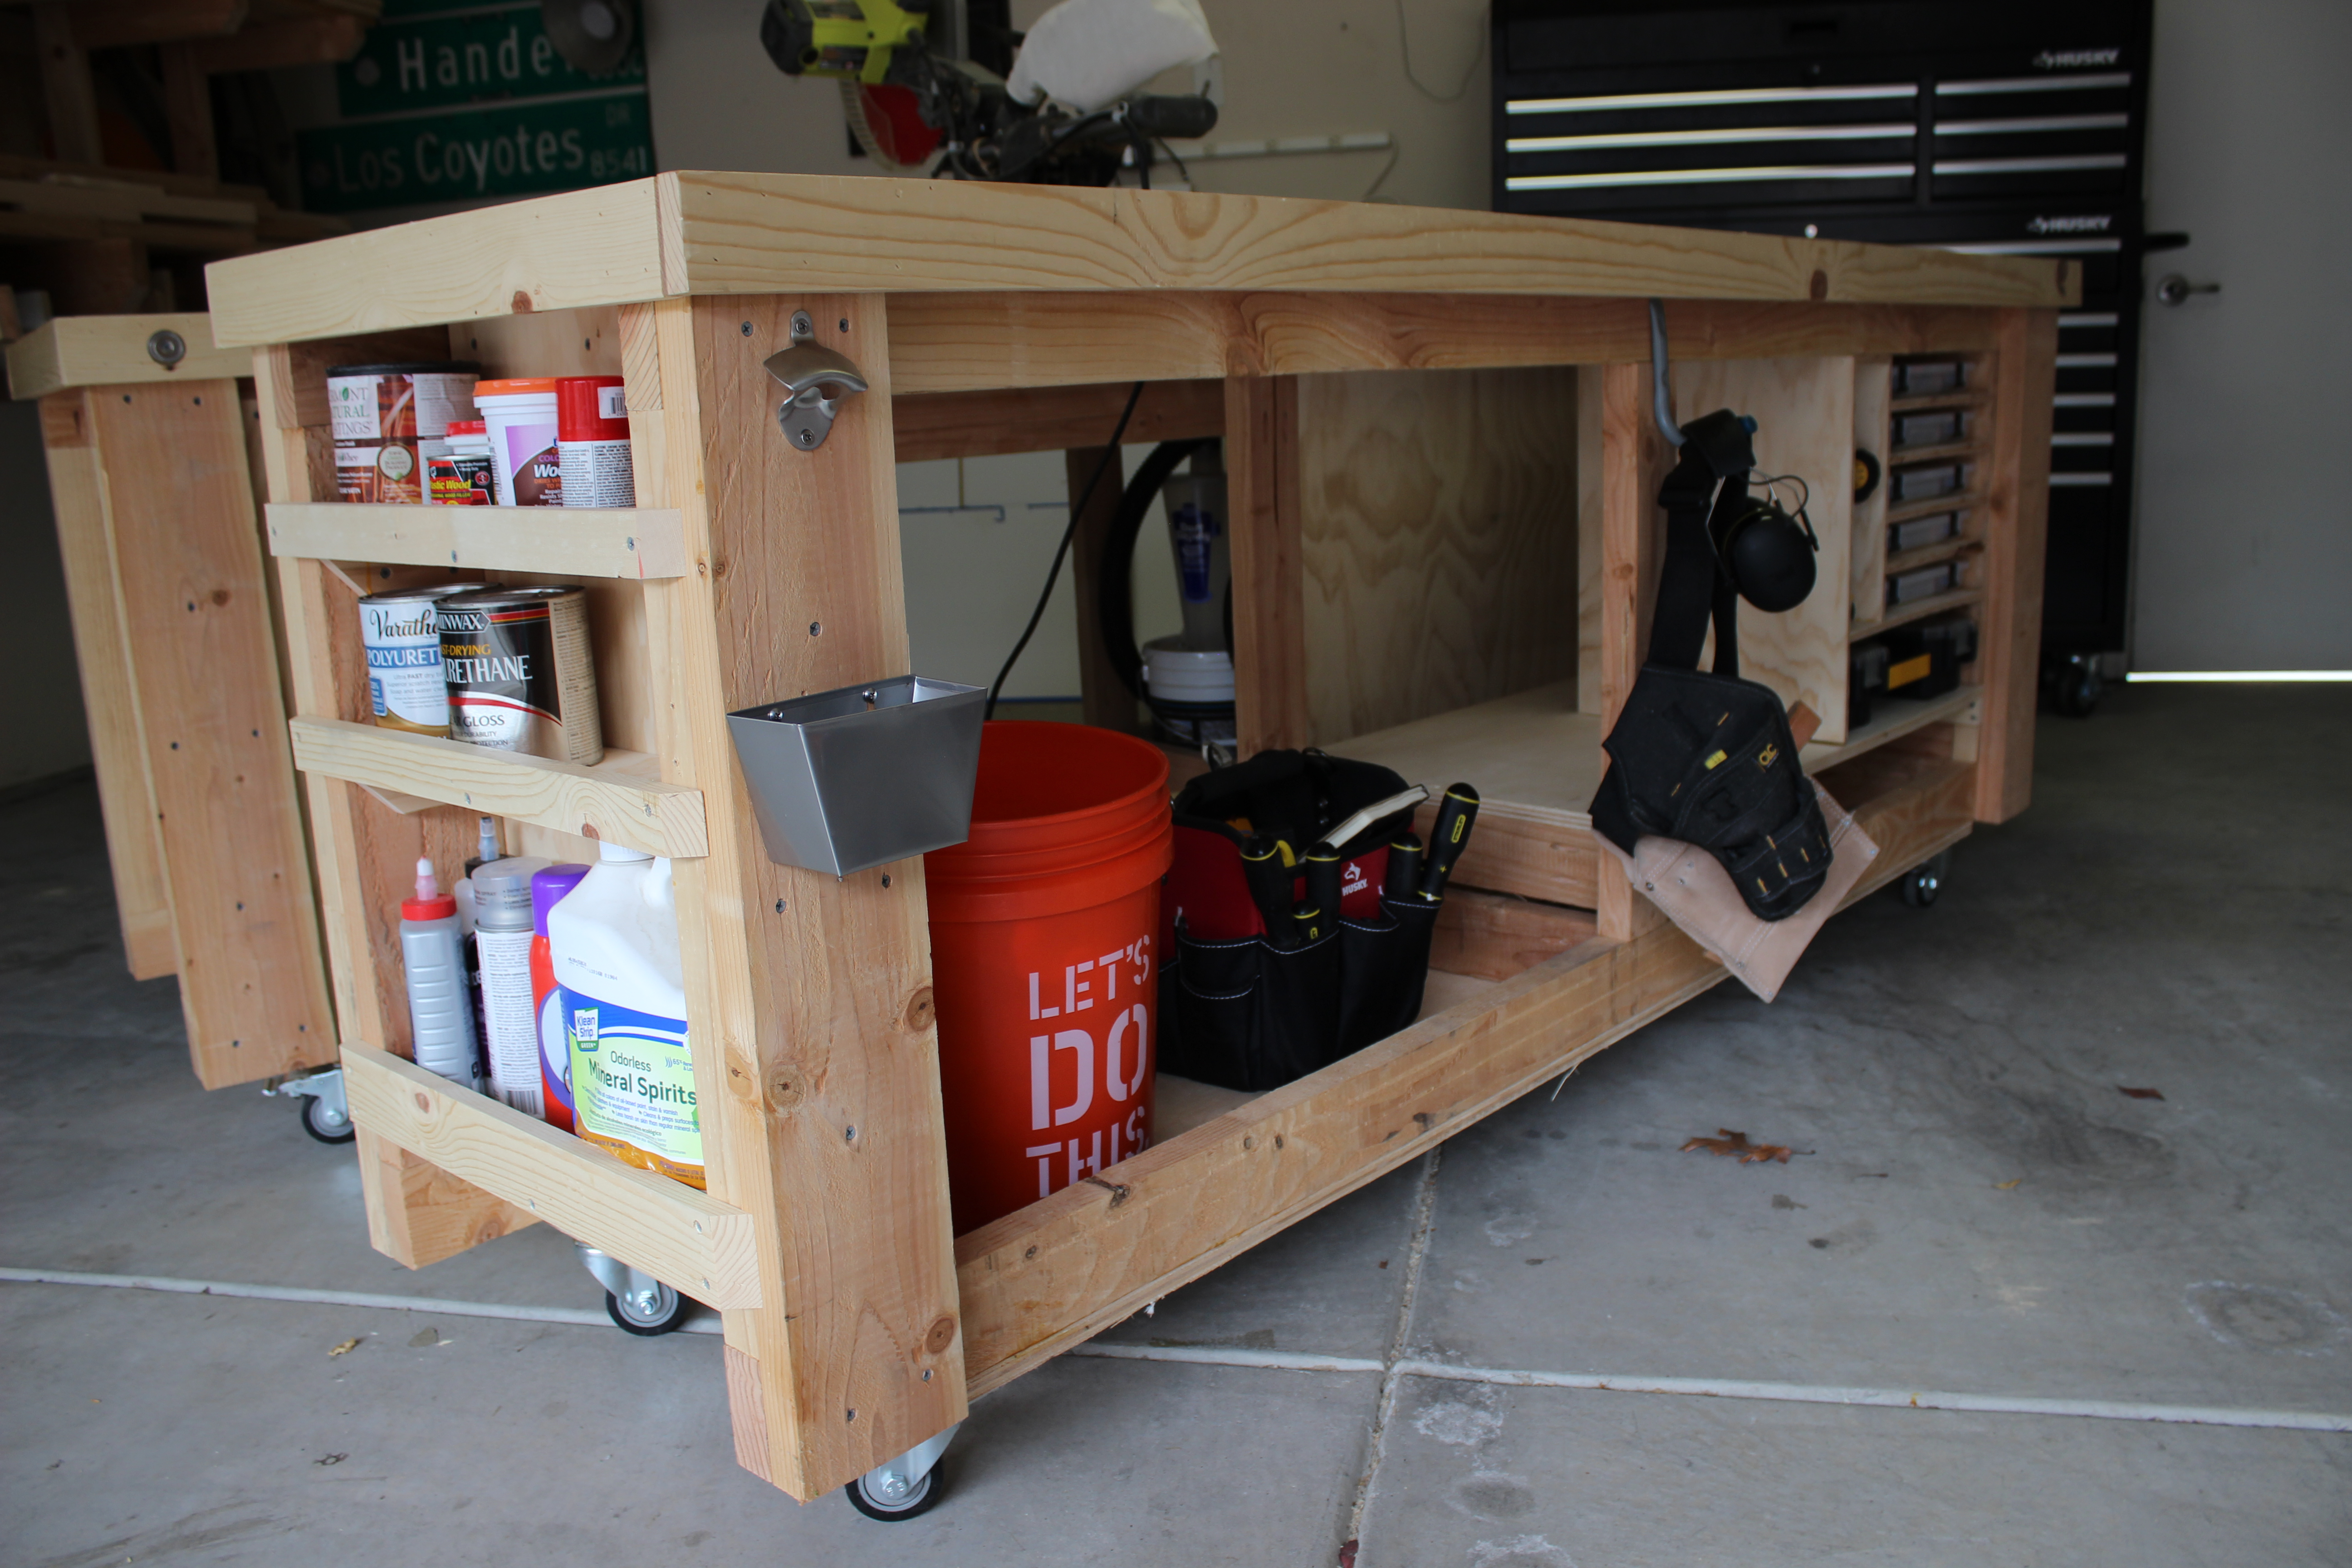 Side view of mobile workbench with shelves and storage